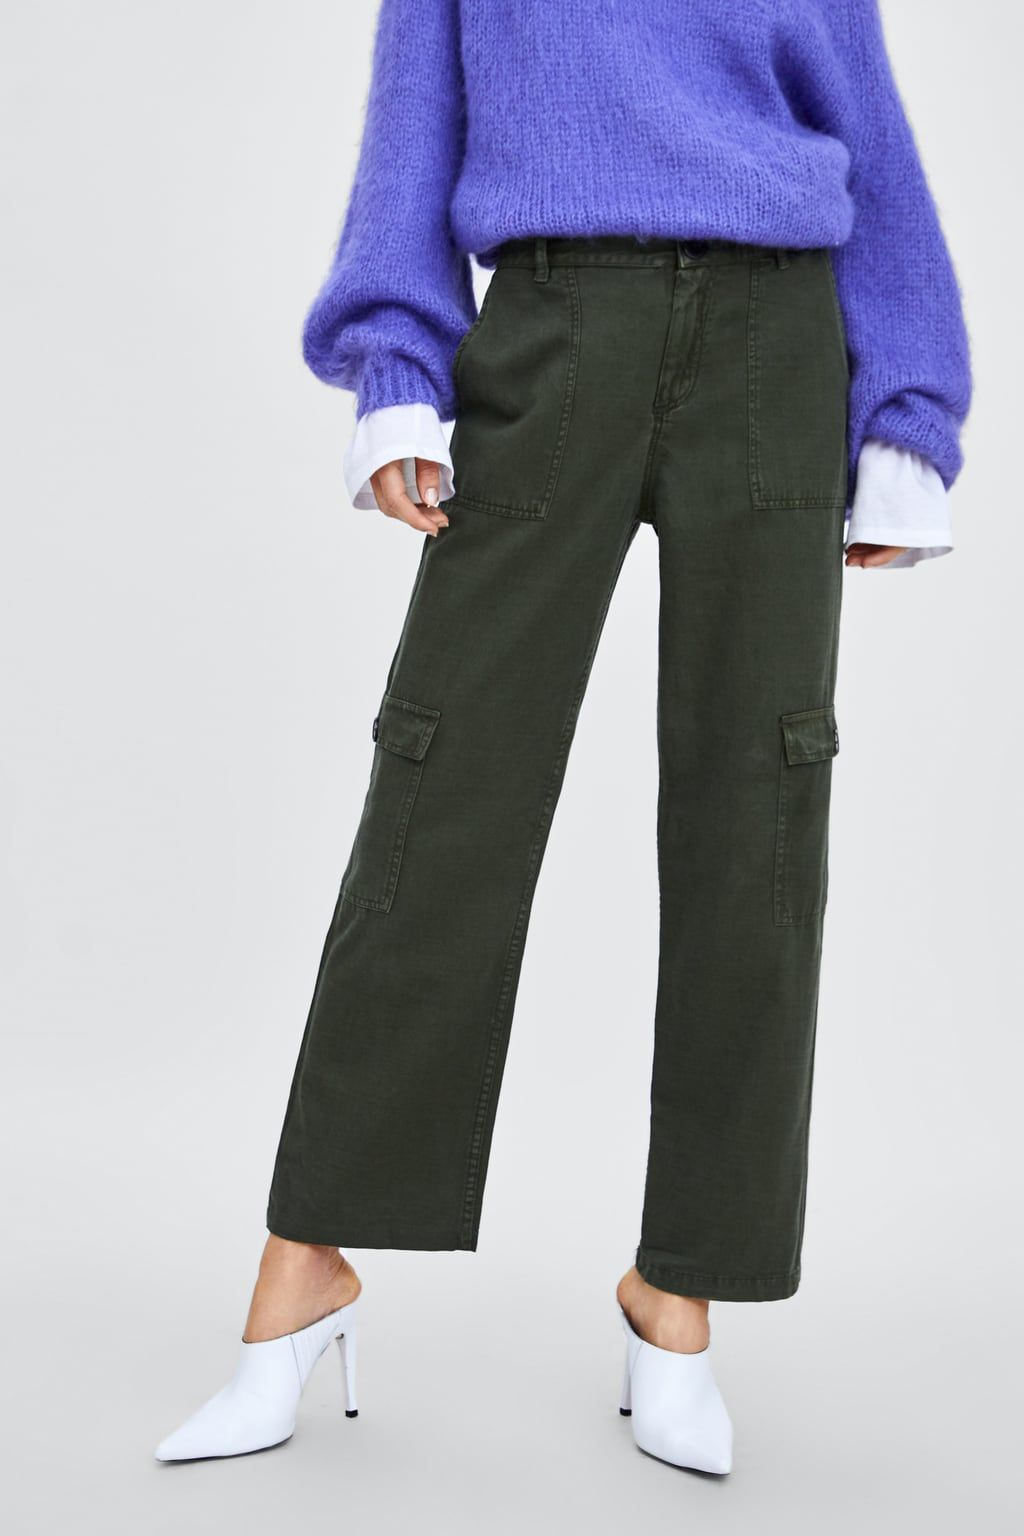 32442eaa ZARA Trends That You Want To Get On Board - Street Style bargains ...